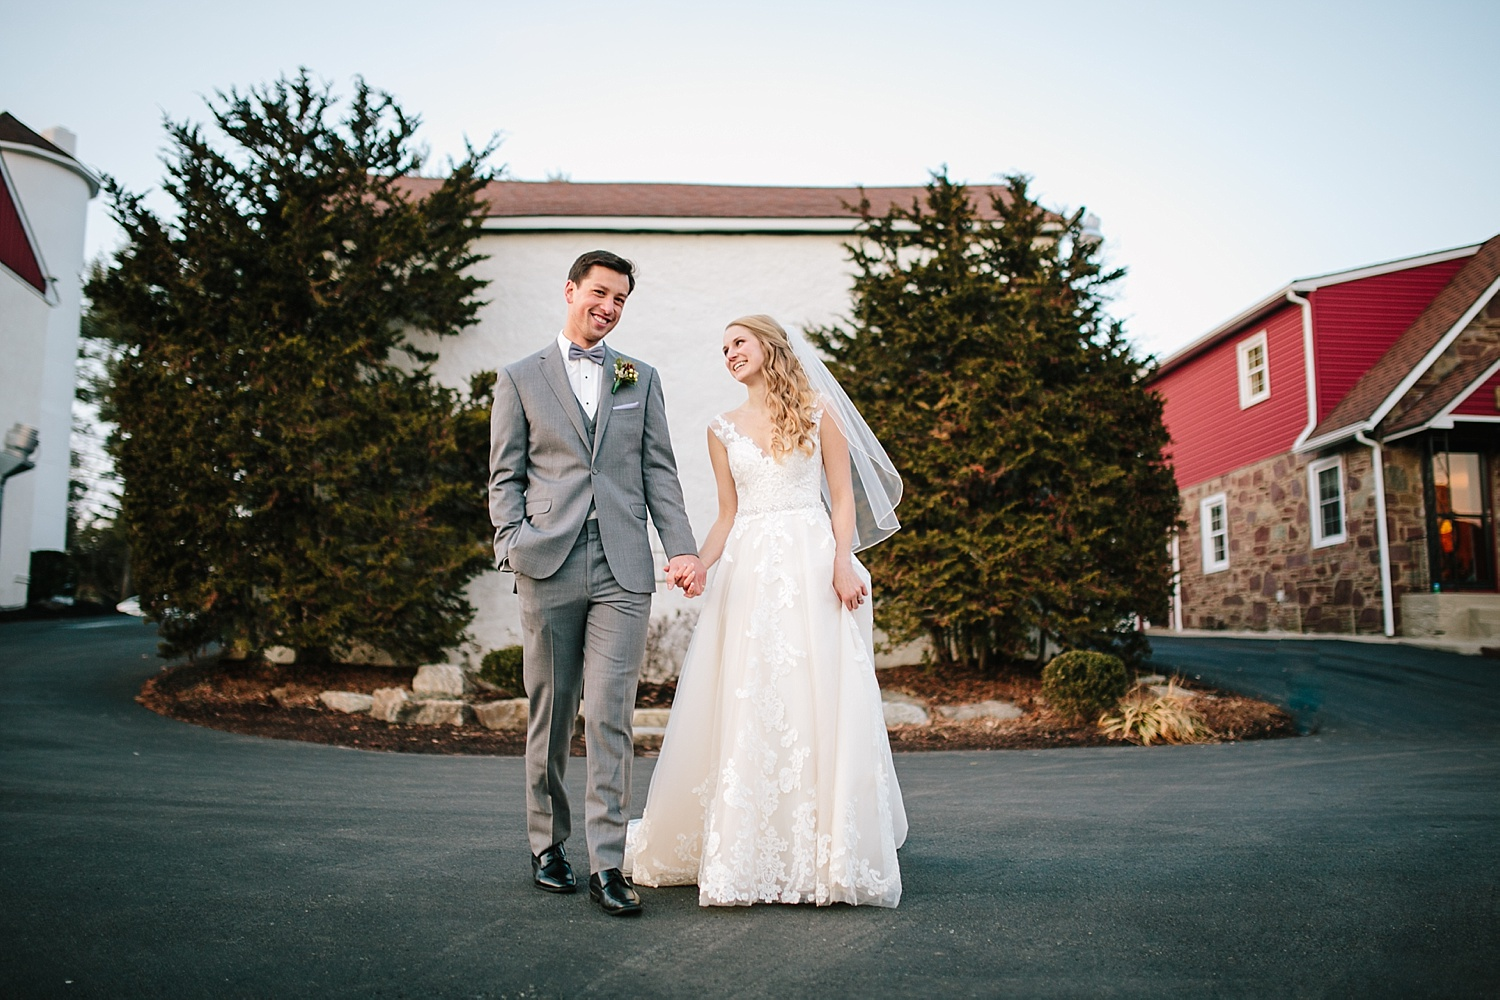 jessdavid_barnonbridge_phoenixville_winter_wedding_image_090.jpg